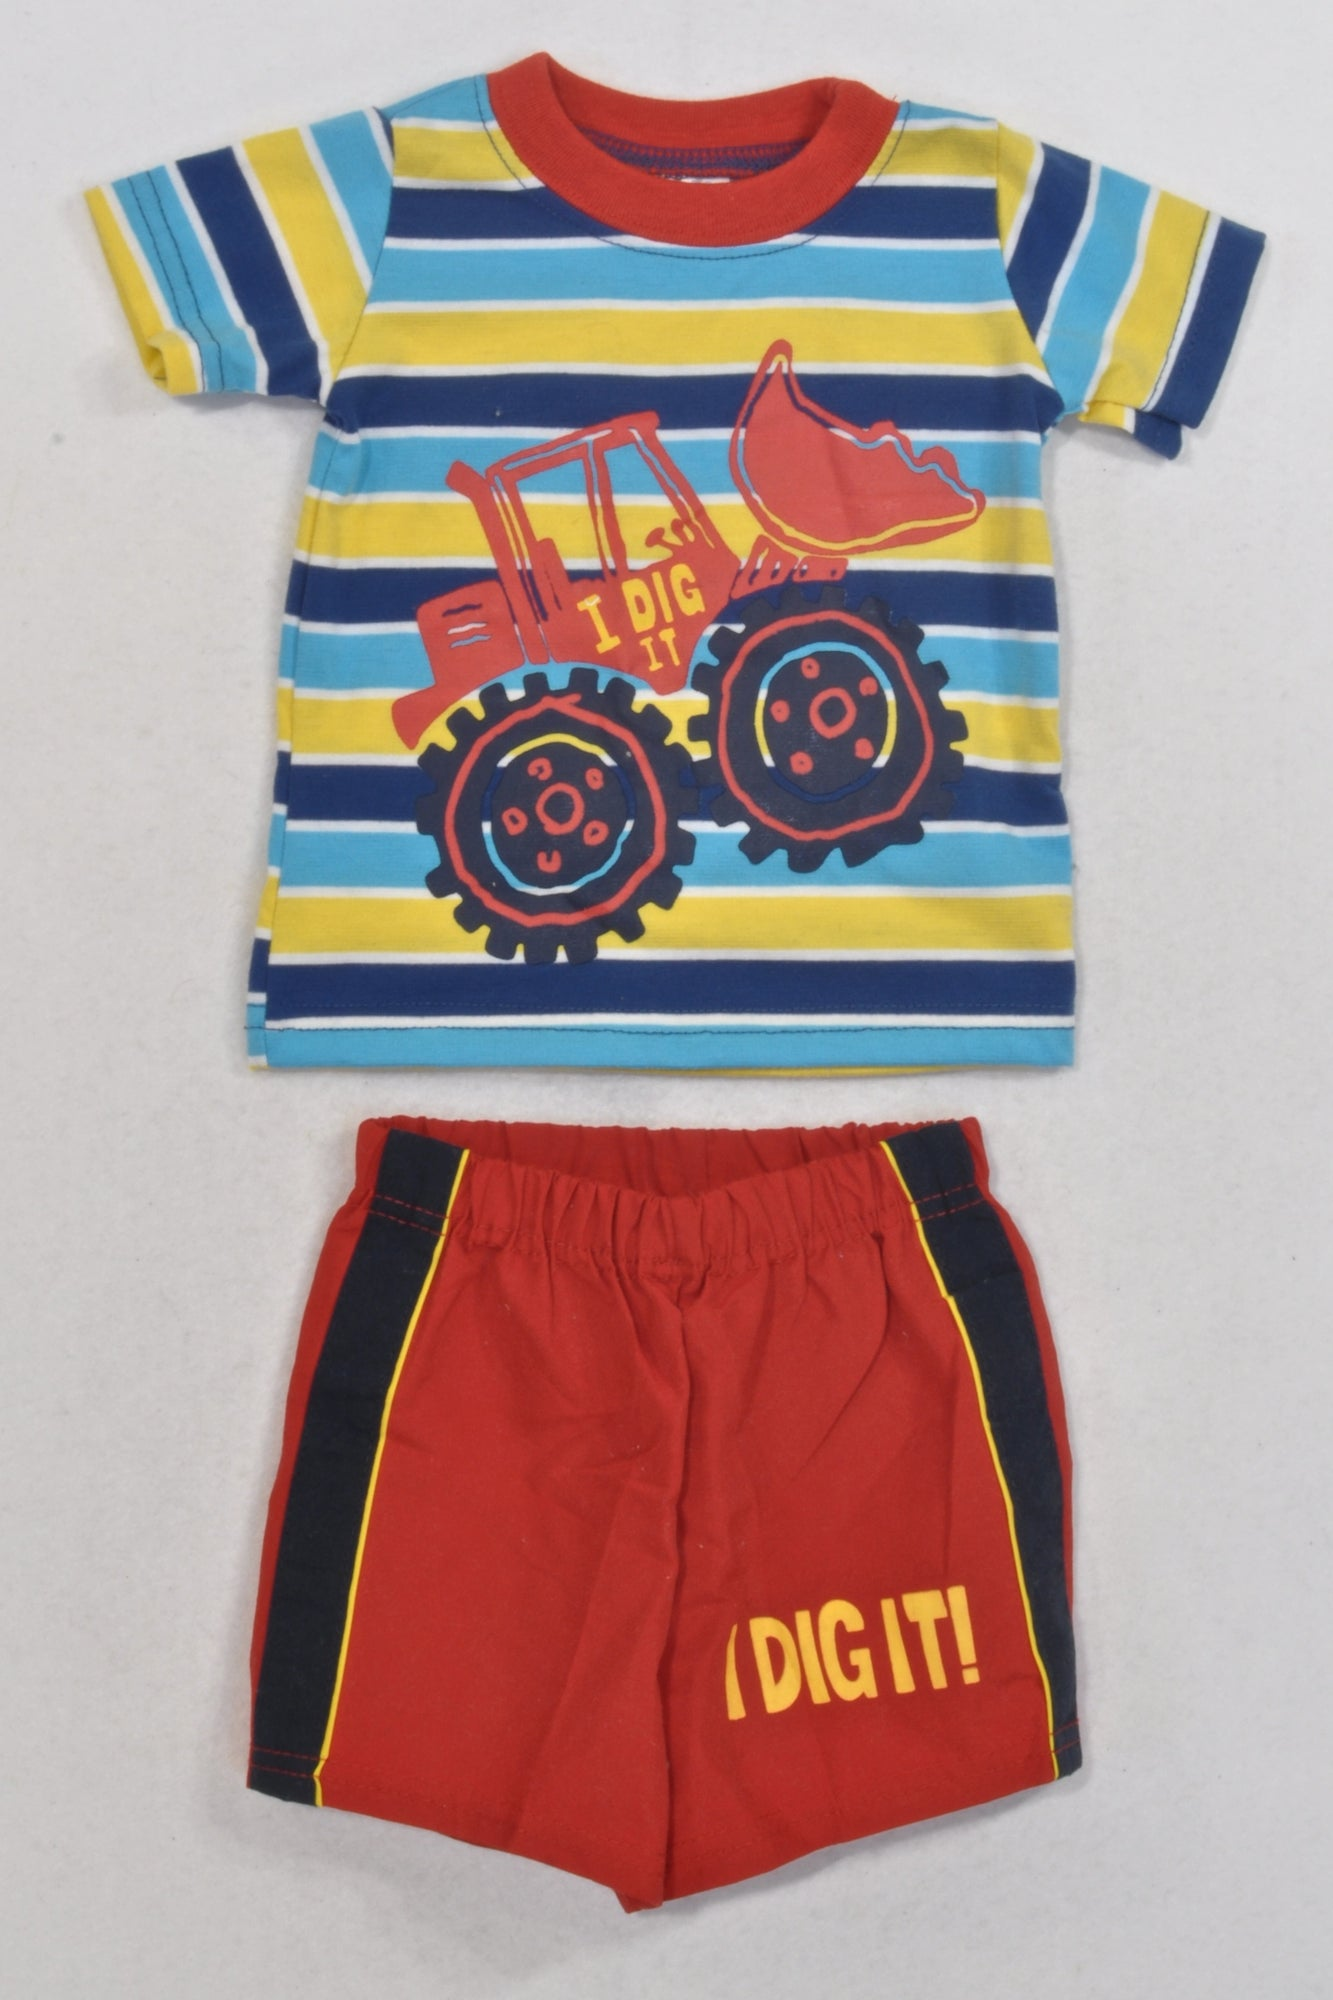 Dig It Blue and Yellow Striped T-shirt and Red Shorts Outfit Boys 0-3 months